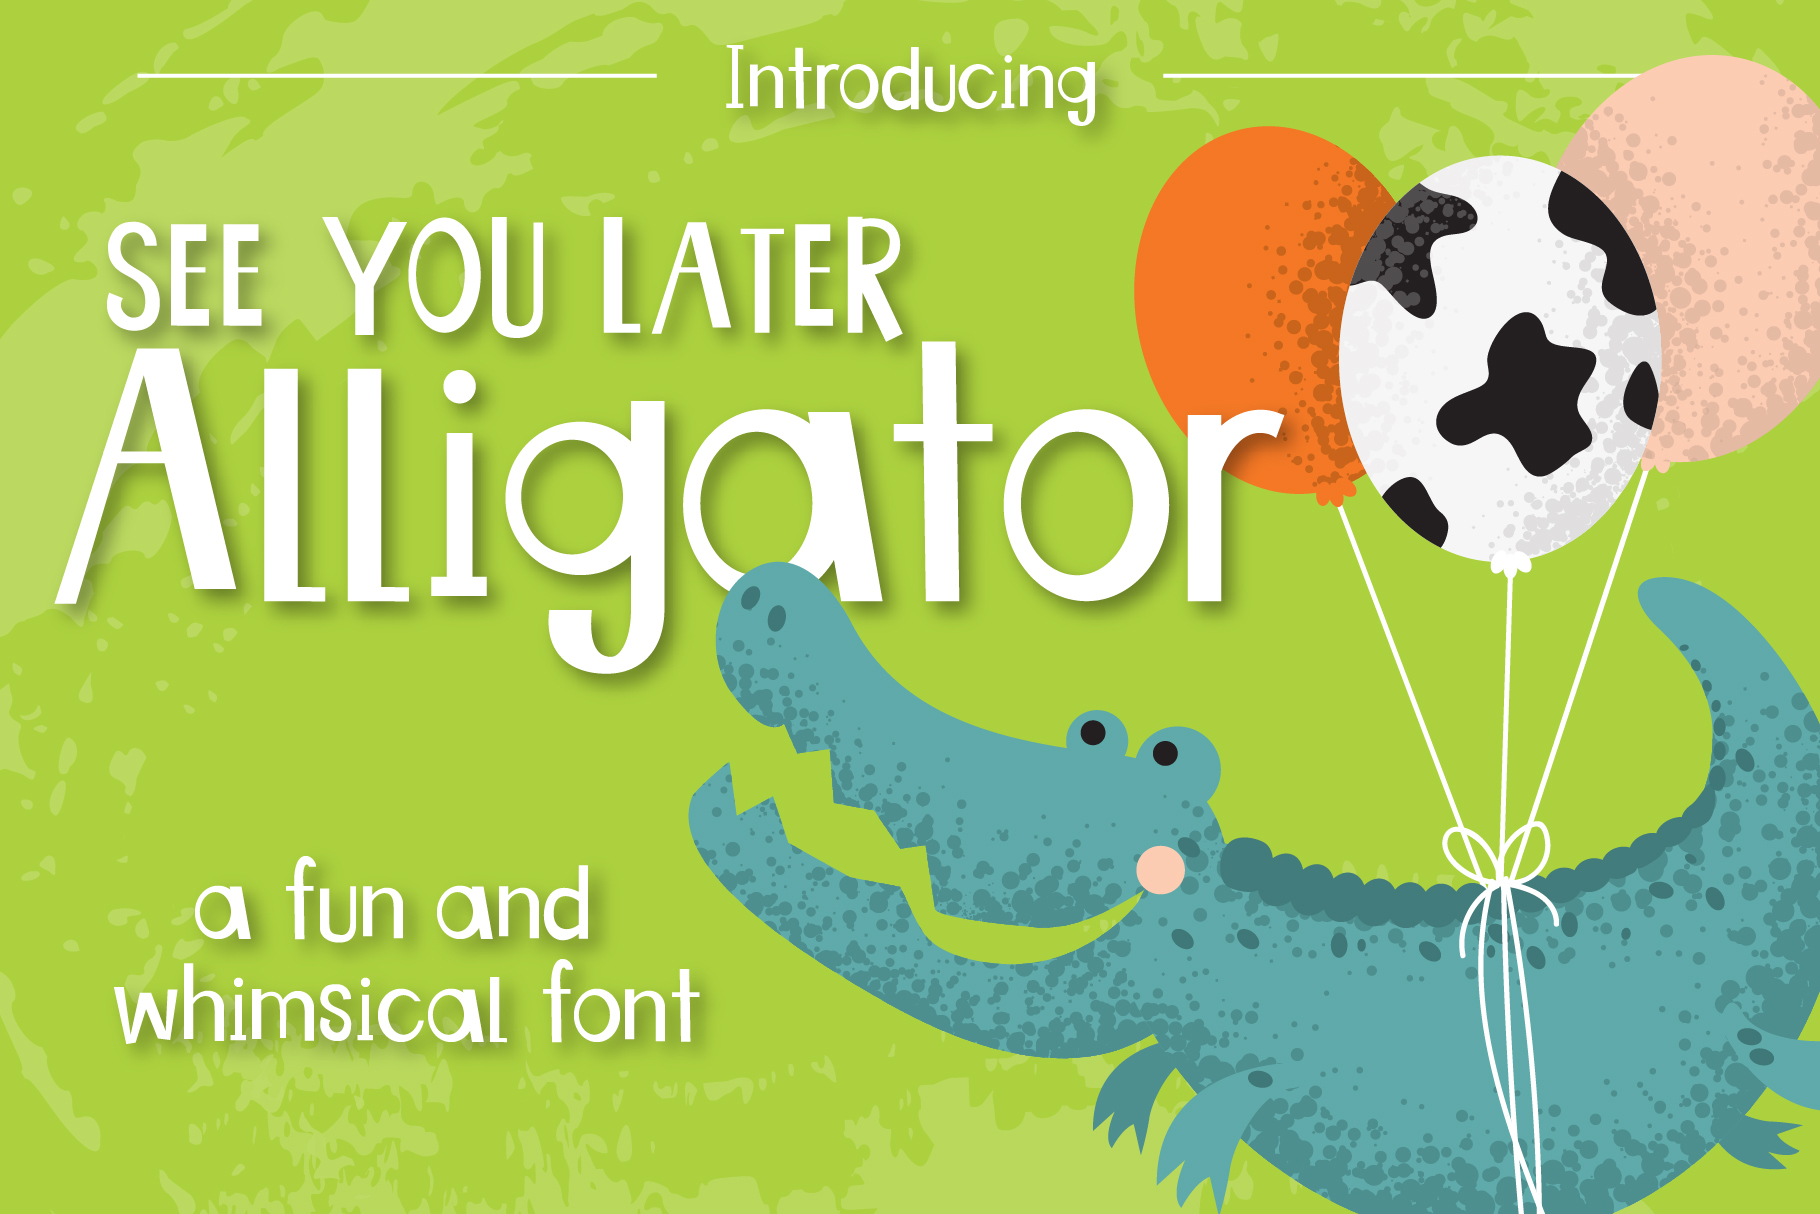 See You Later Alligator example image 1